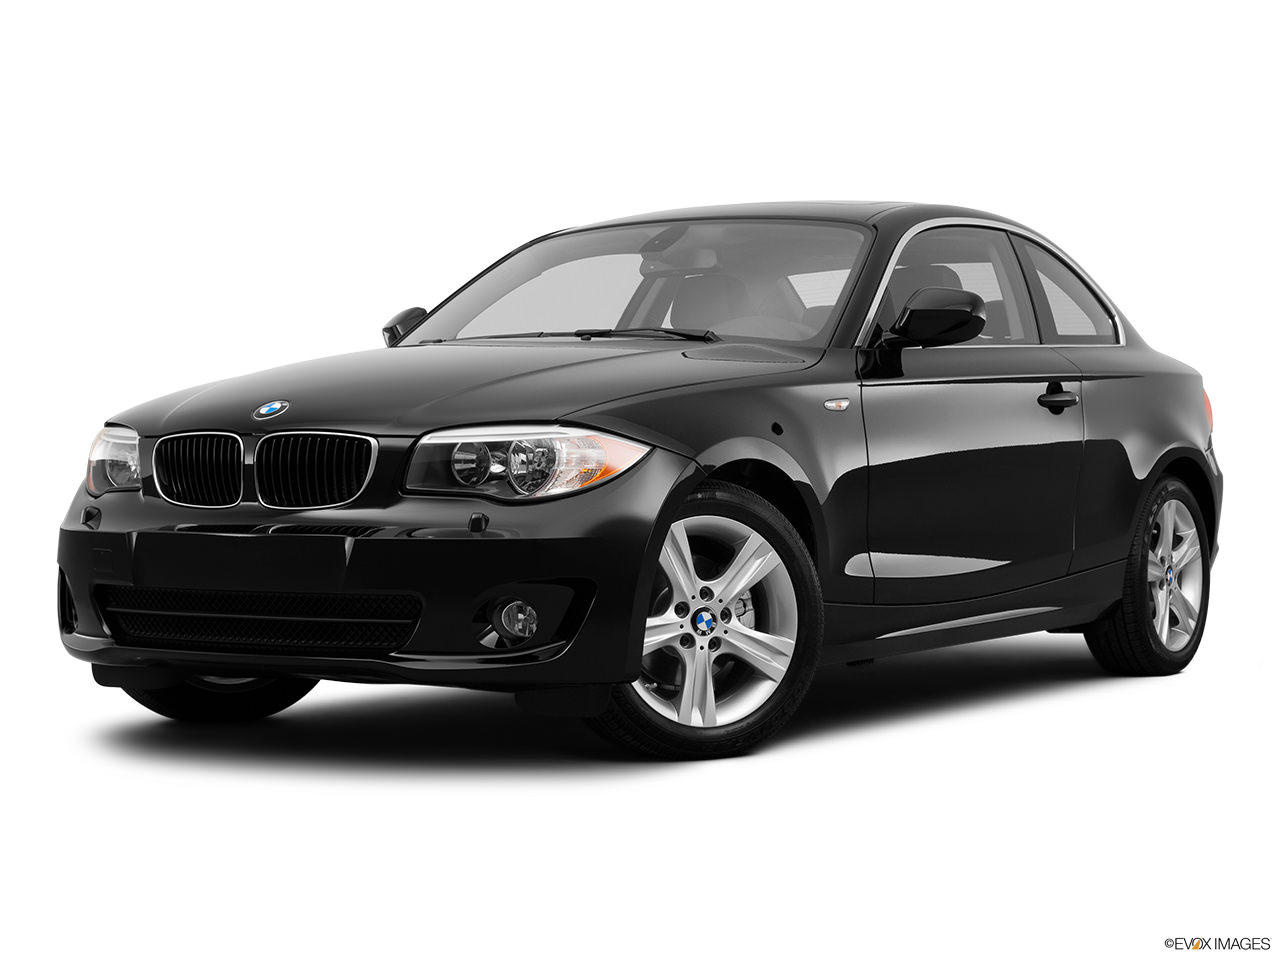 a buyer s guide to the 2012 bmw 1 series yourmechanic advice rh yourmechanic com 2013 BMW 128I 2012 BMW 1 Series 128I Space Gray Metallic